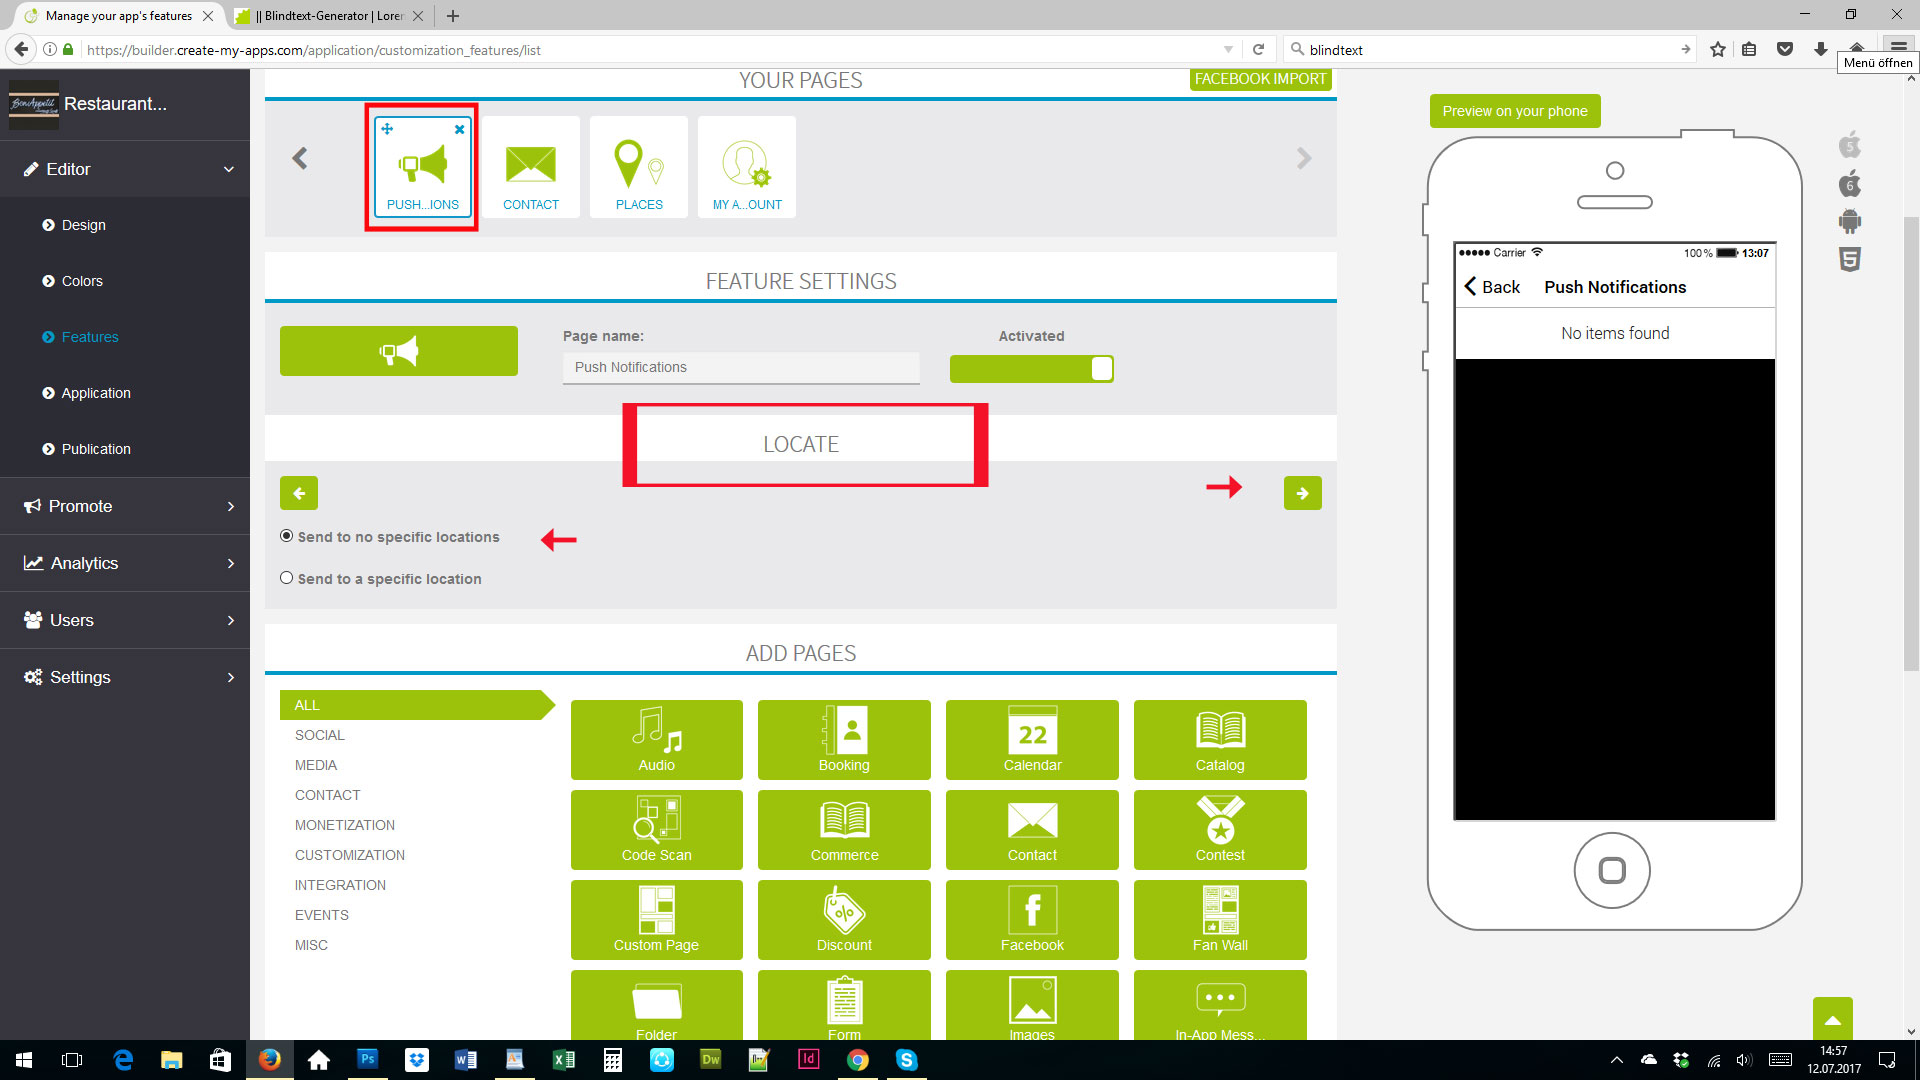 Ios android restaurant app with cms by create my apps